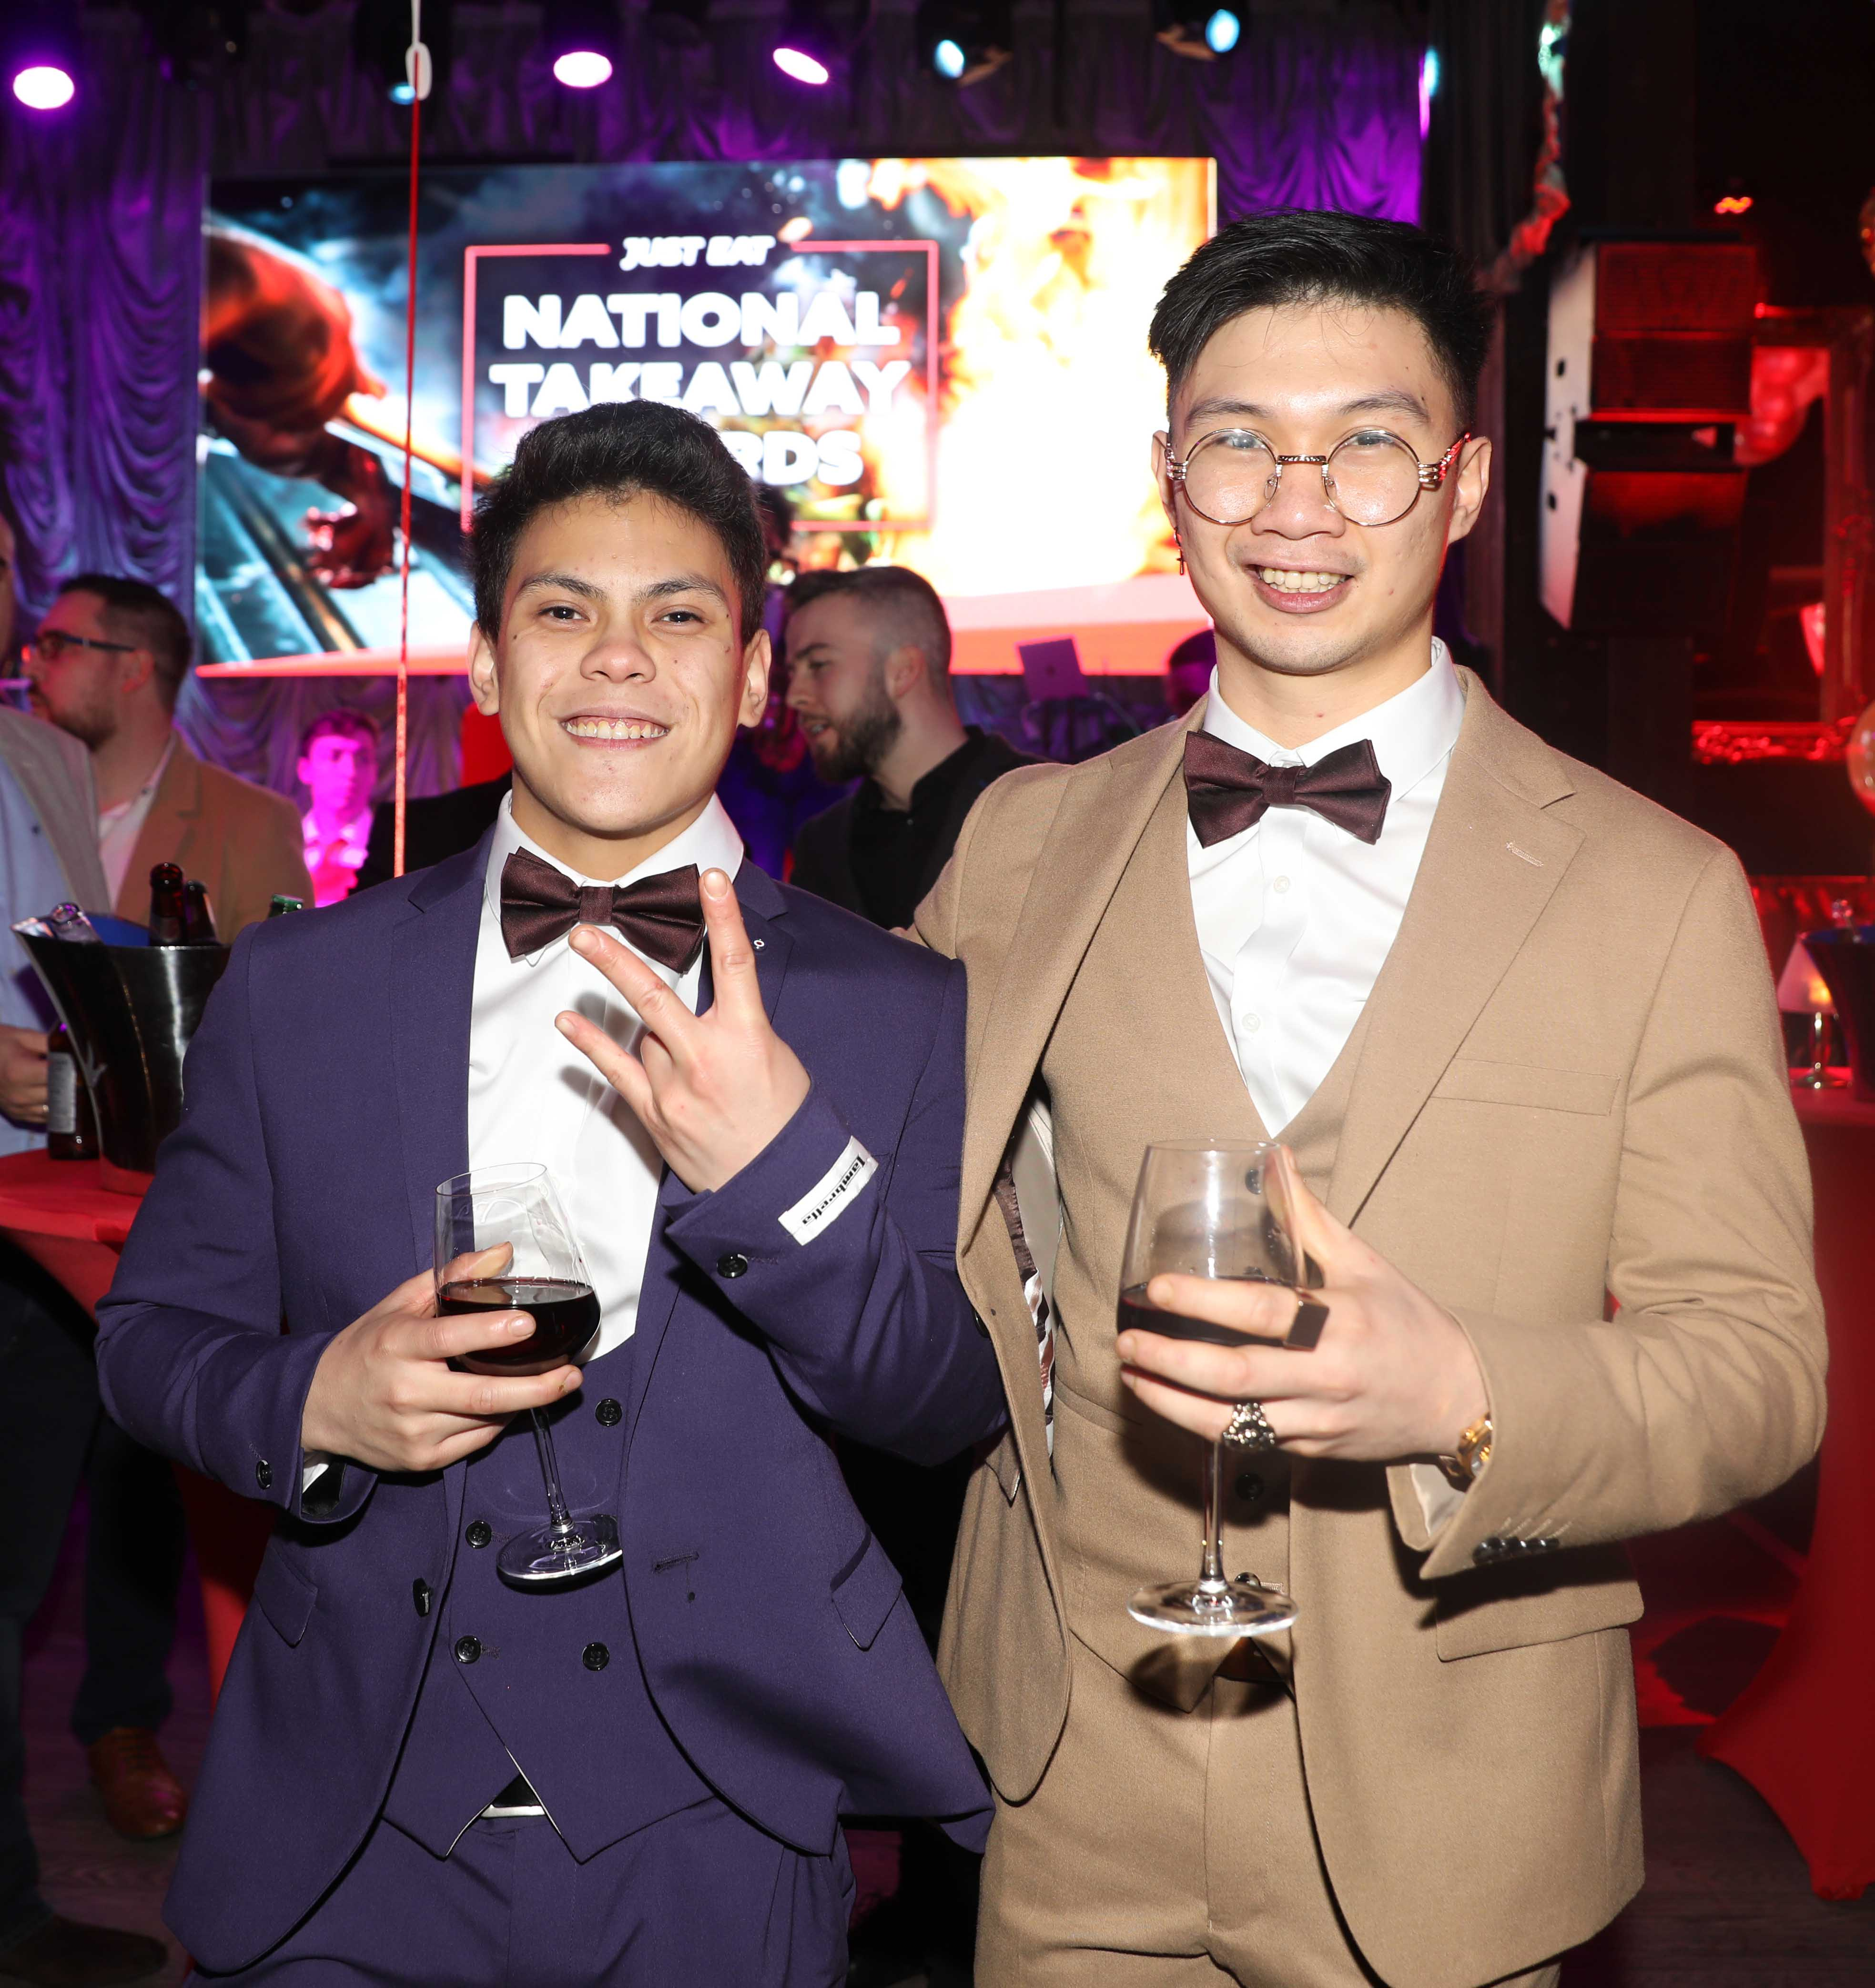 Pictured last night were Christian Freire and Renzo Pinulan at the sixth annual Just Eat National Takeaway Awards in Dublin's Twenty Two. Photograph: Leon Farrell / Photocall Ireland